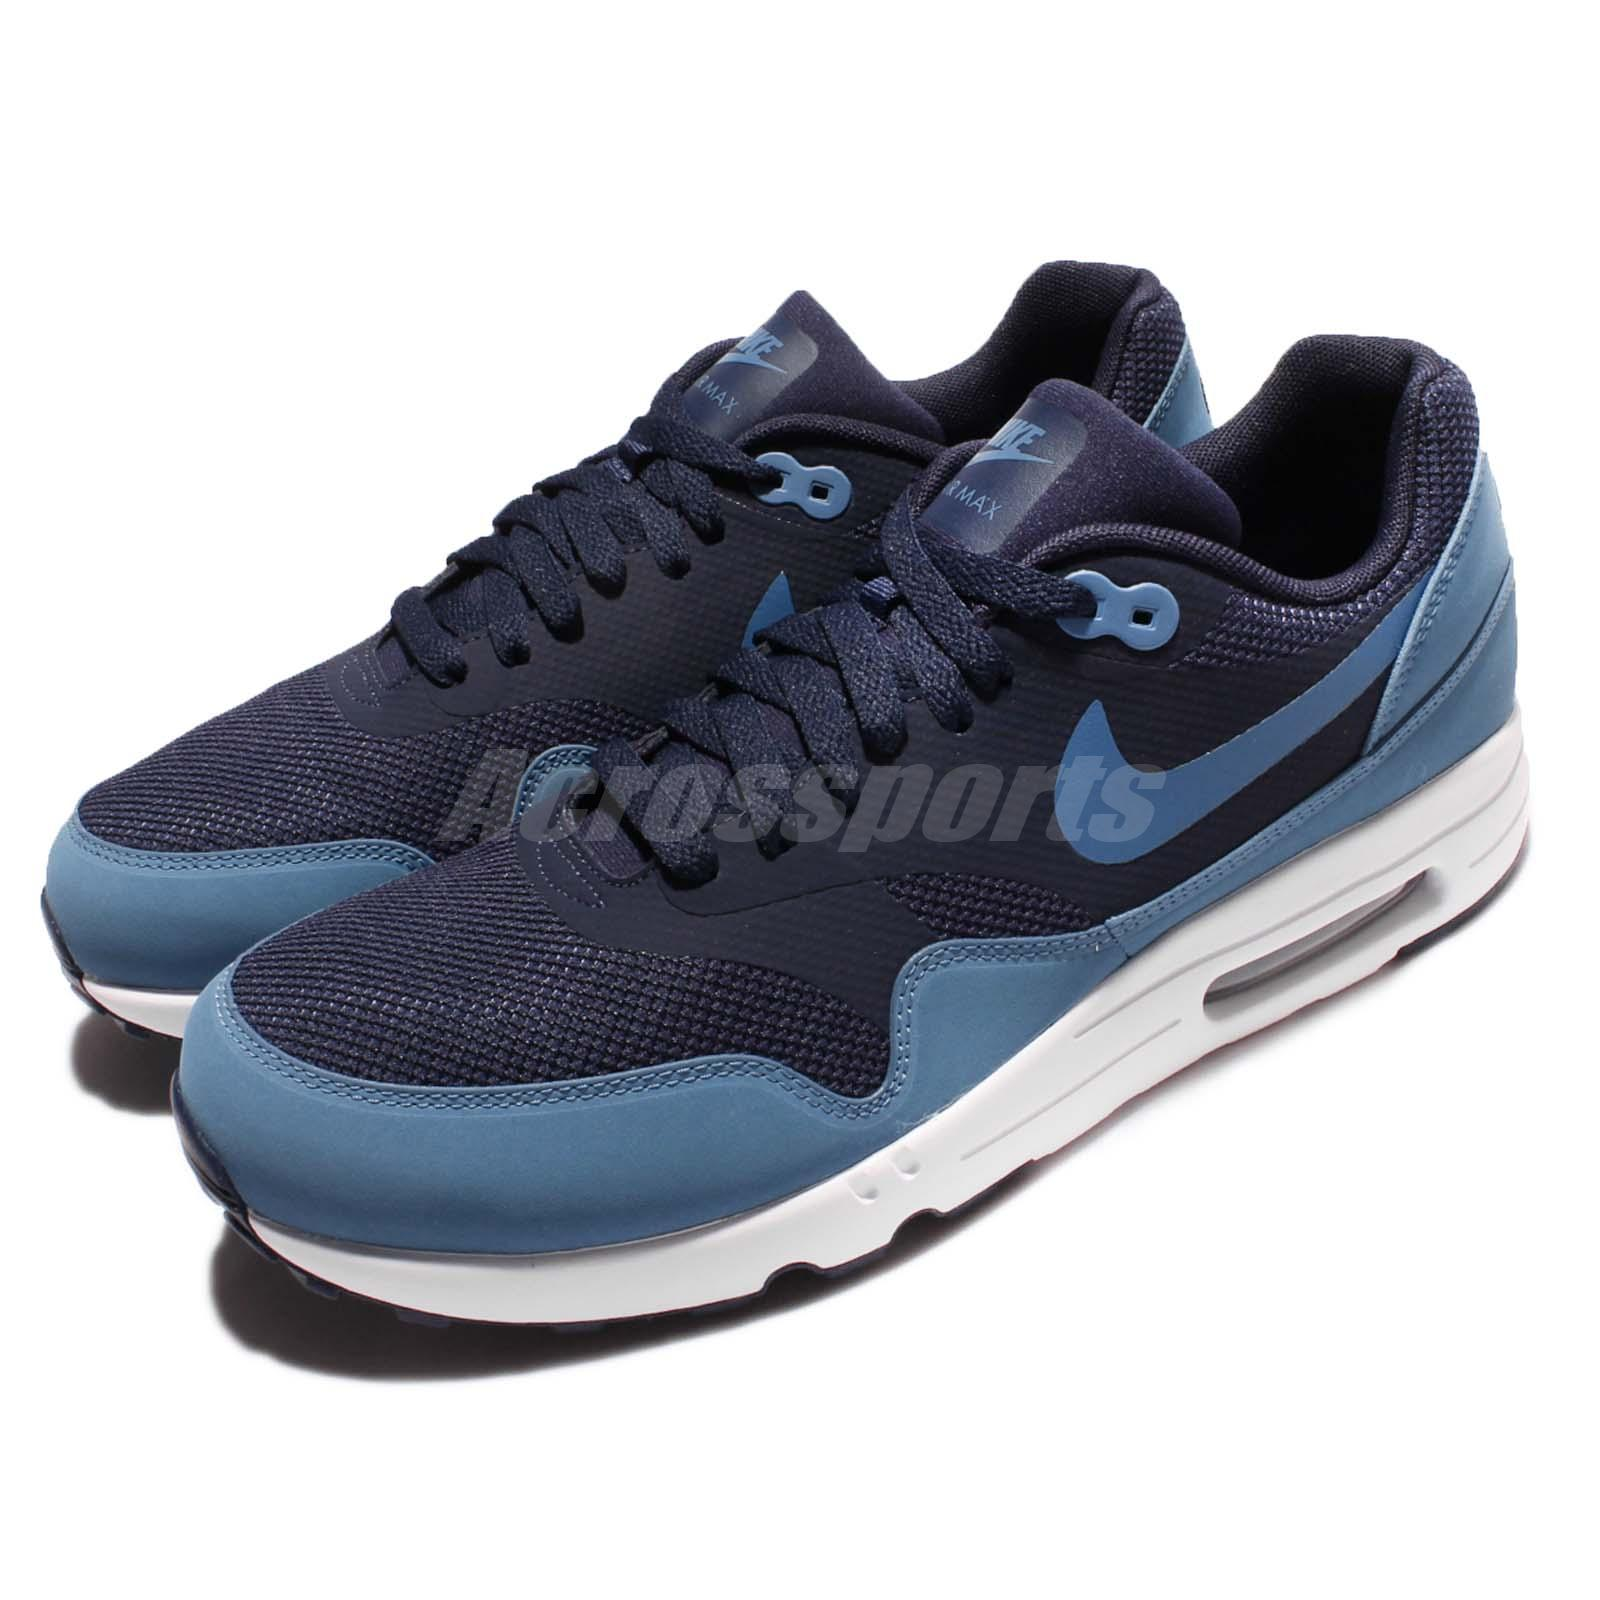 a38412a58e Details about Nike Air Max 1 Ultra 2.0 Essential Obsidian Blue Men Shoes  Sneakers 875679-401